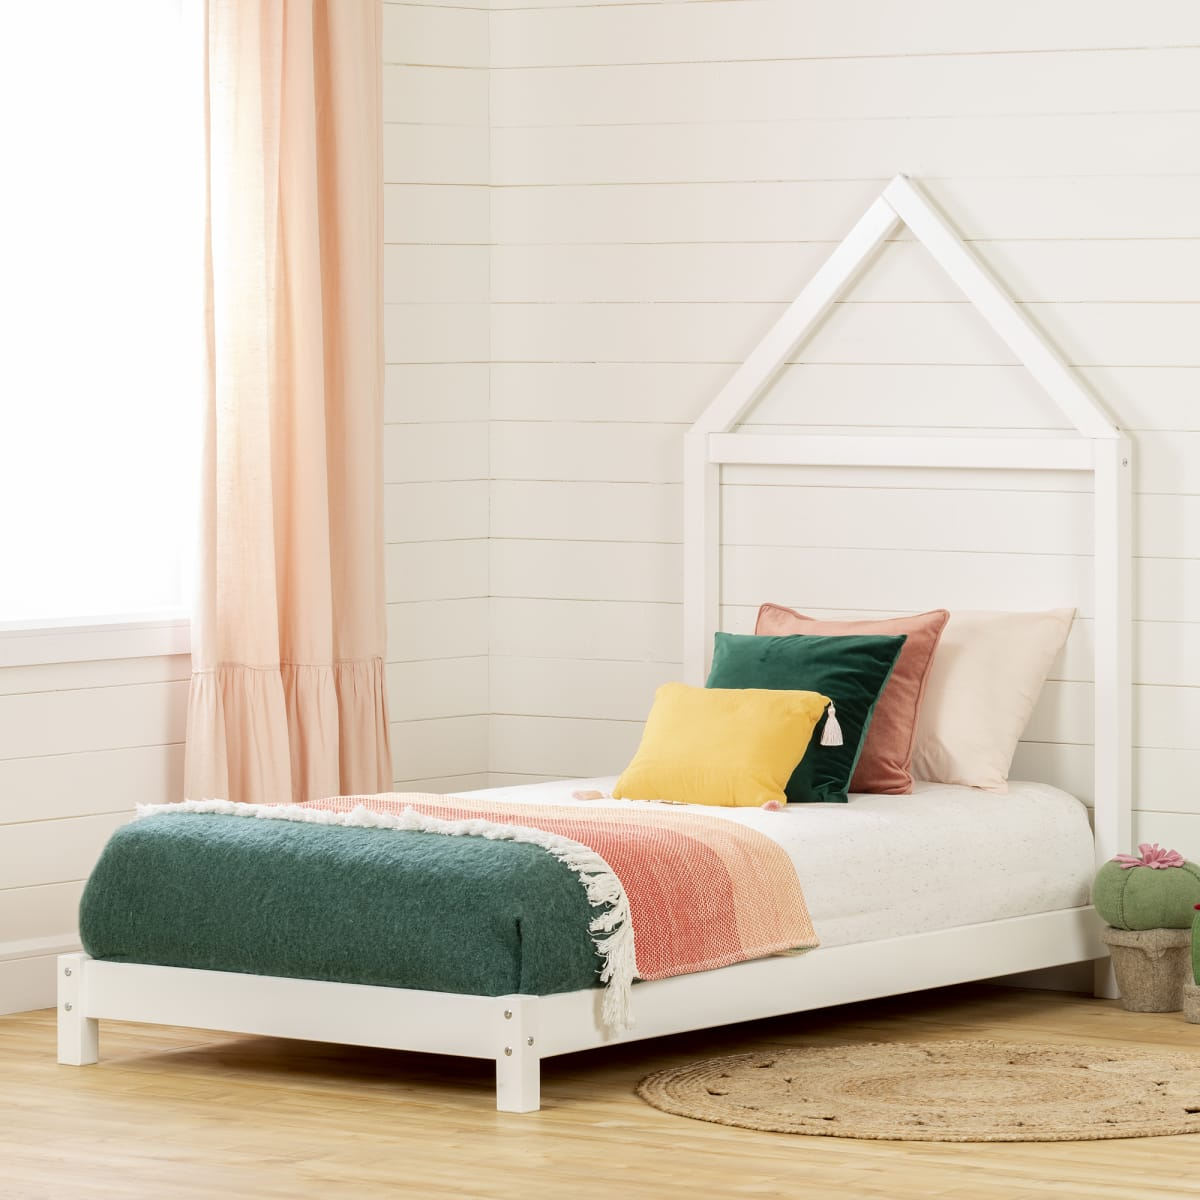 Sweedi Bed With House Frame Headboard Bed Kids Bedroom Baby And Kids Products South Shore Furniture Us Furniture For Sale Designed And Manufactured In North America